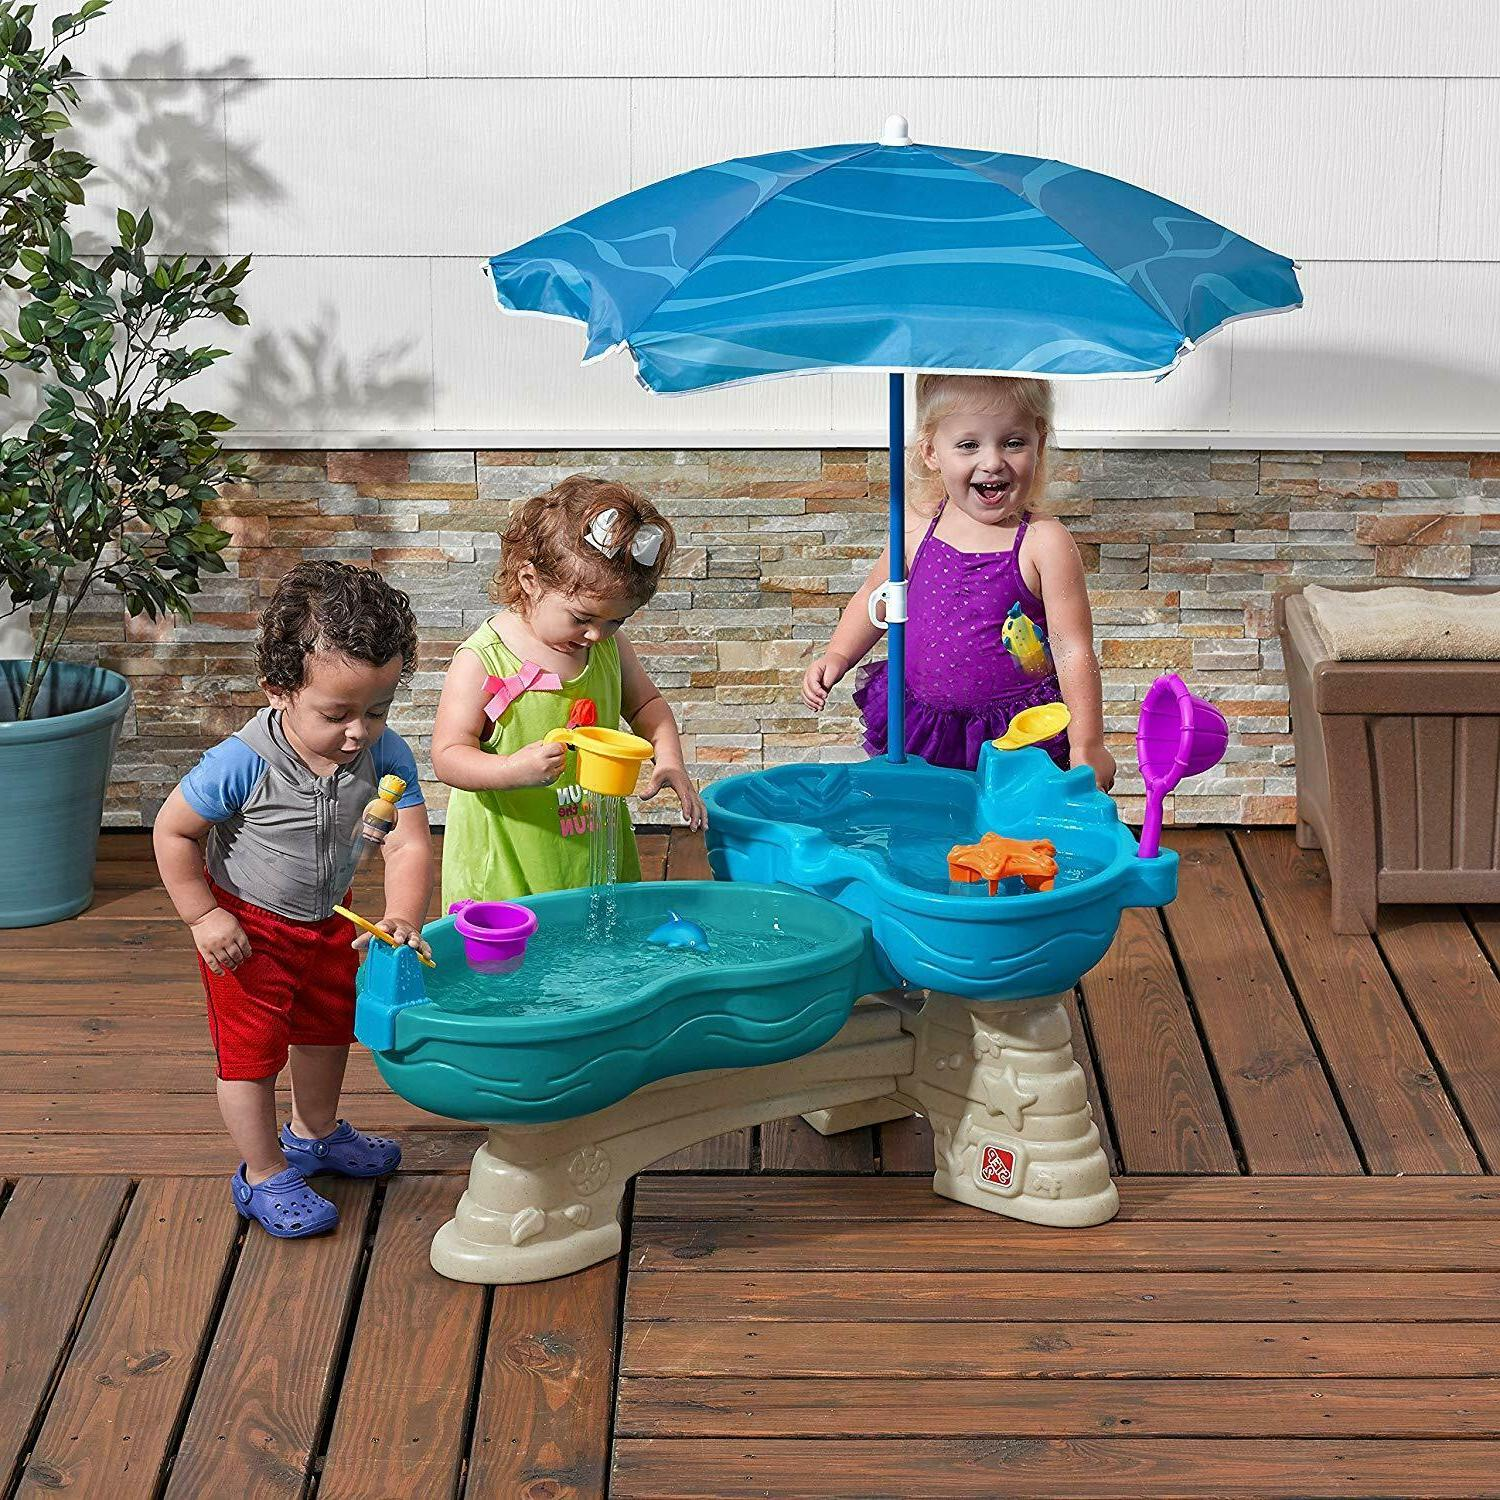 water table toy for kids spill